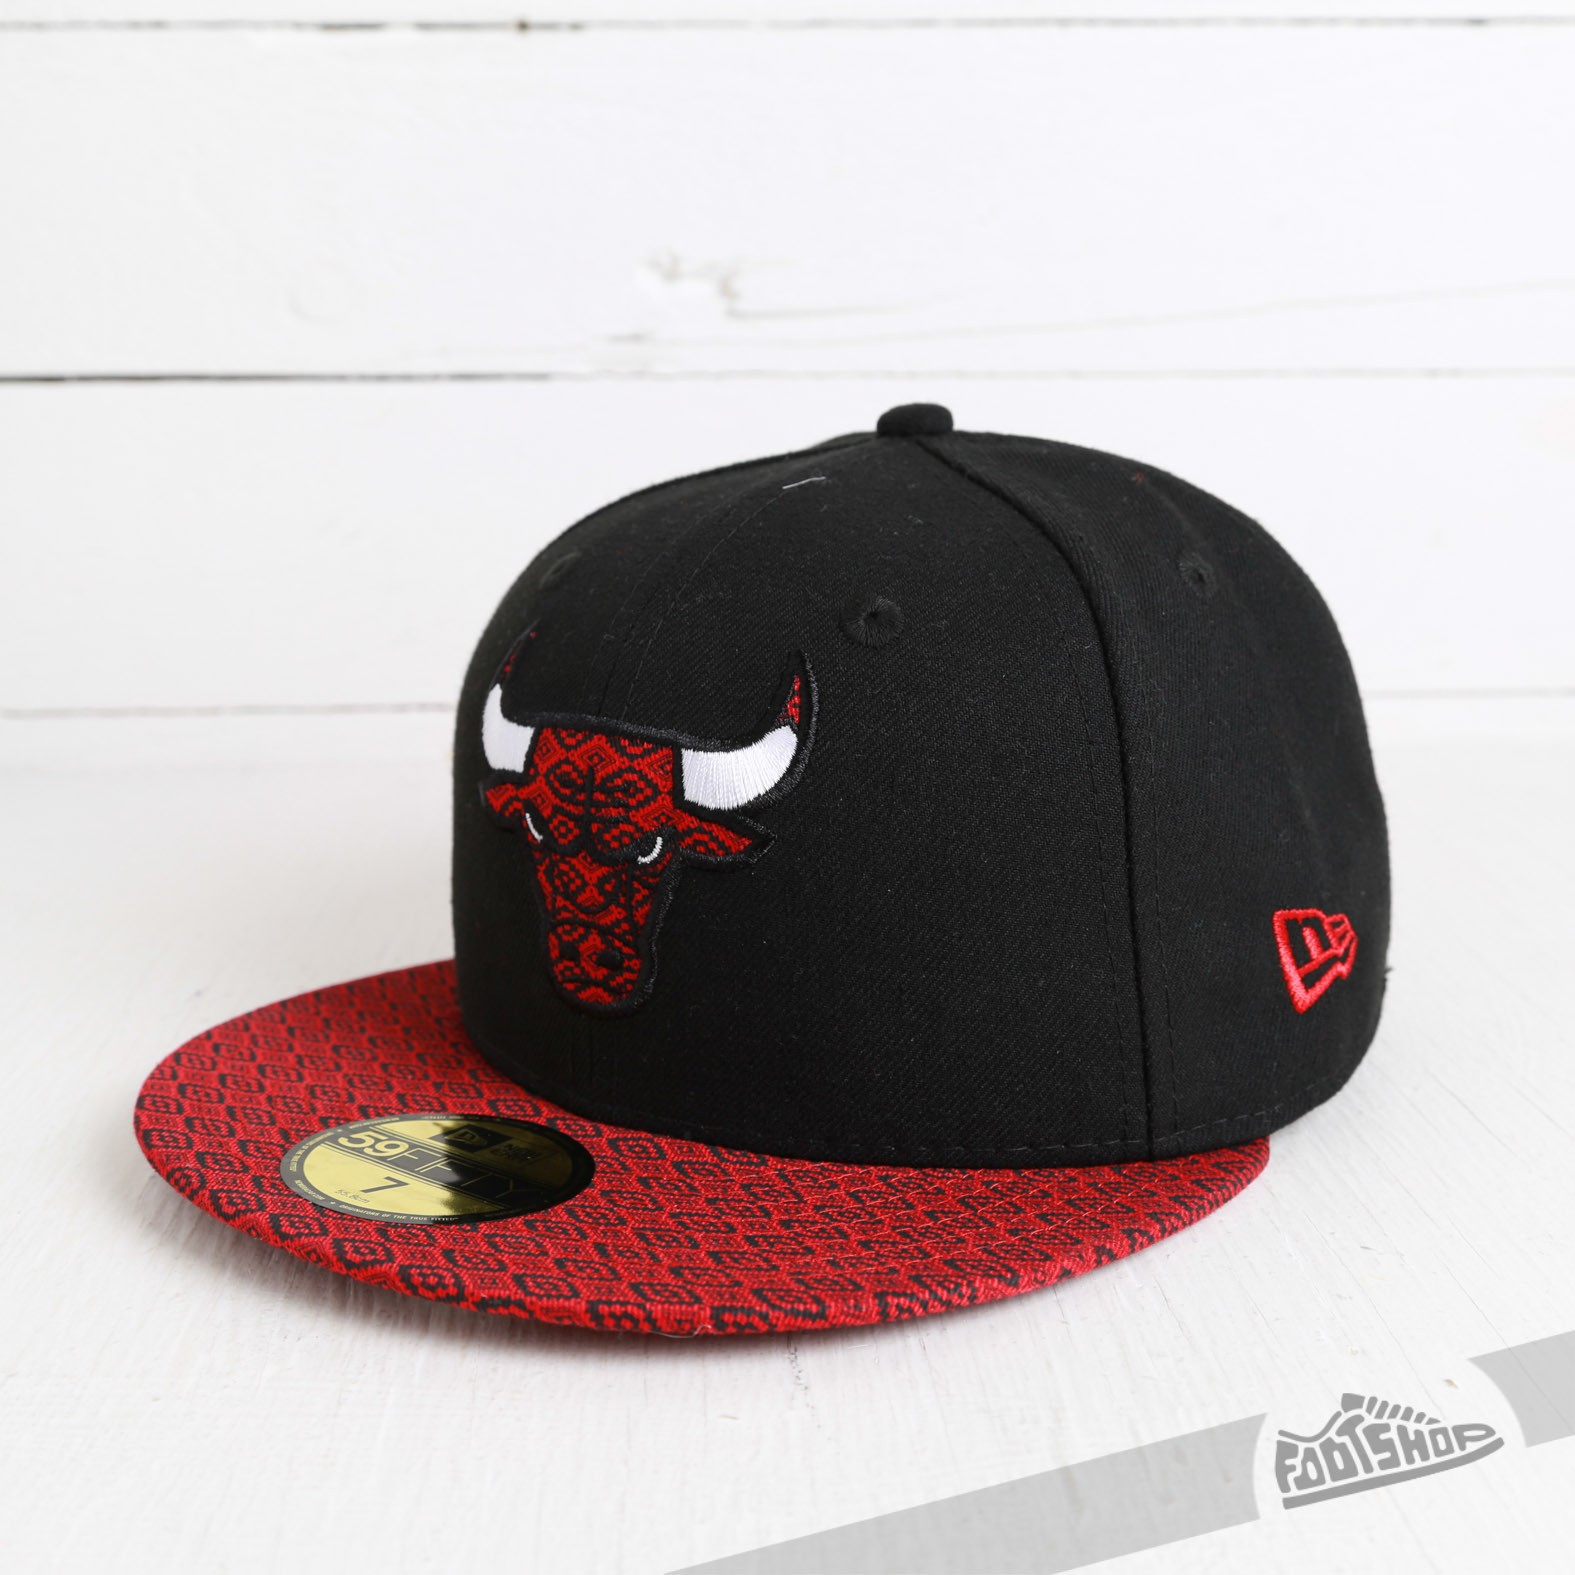 New Era 59FIFTY Fitted Visor Fit Chicago Bulls